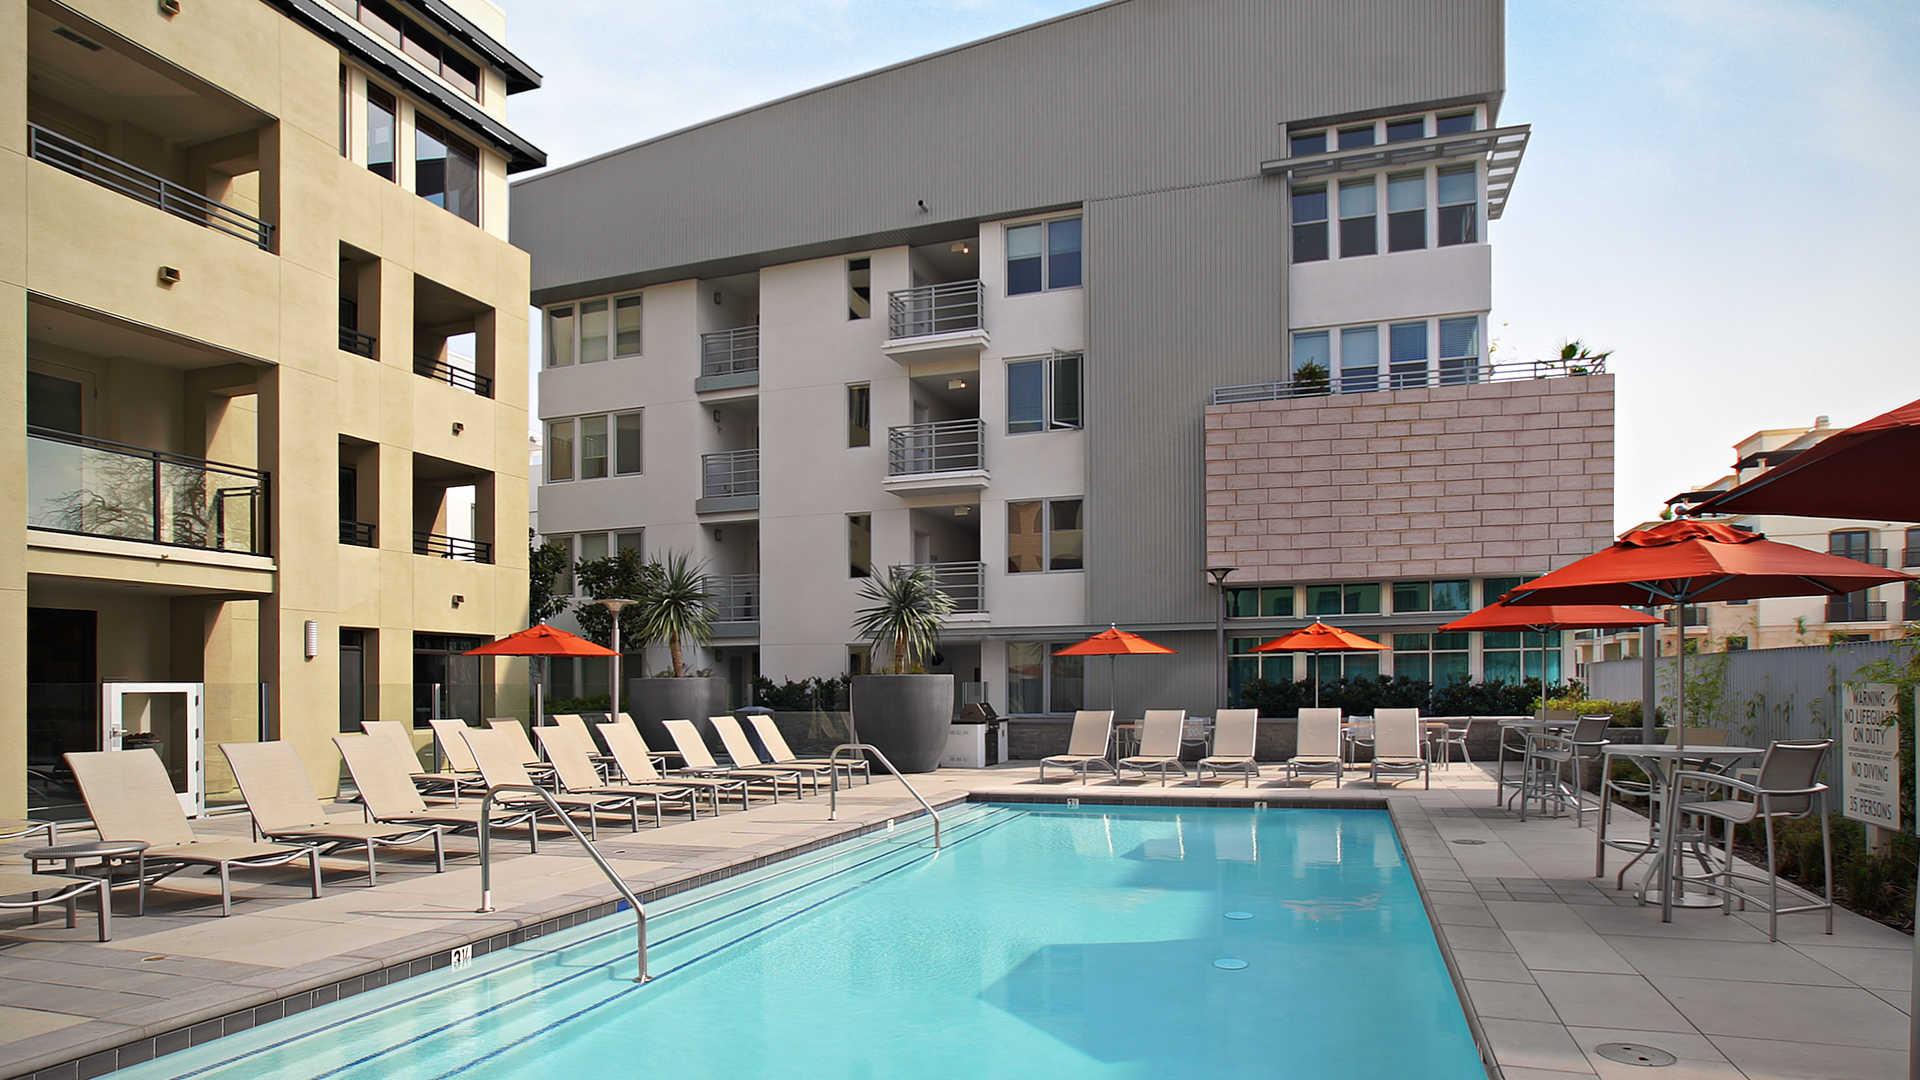 westgate apartments reviews in old town pasadena 231 south de lacey avenue equityapartmentscom - Apartment Manager Jobs